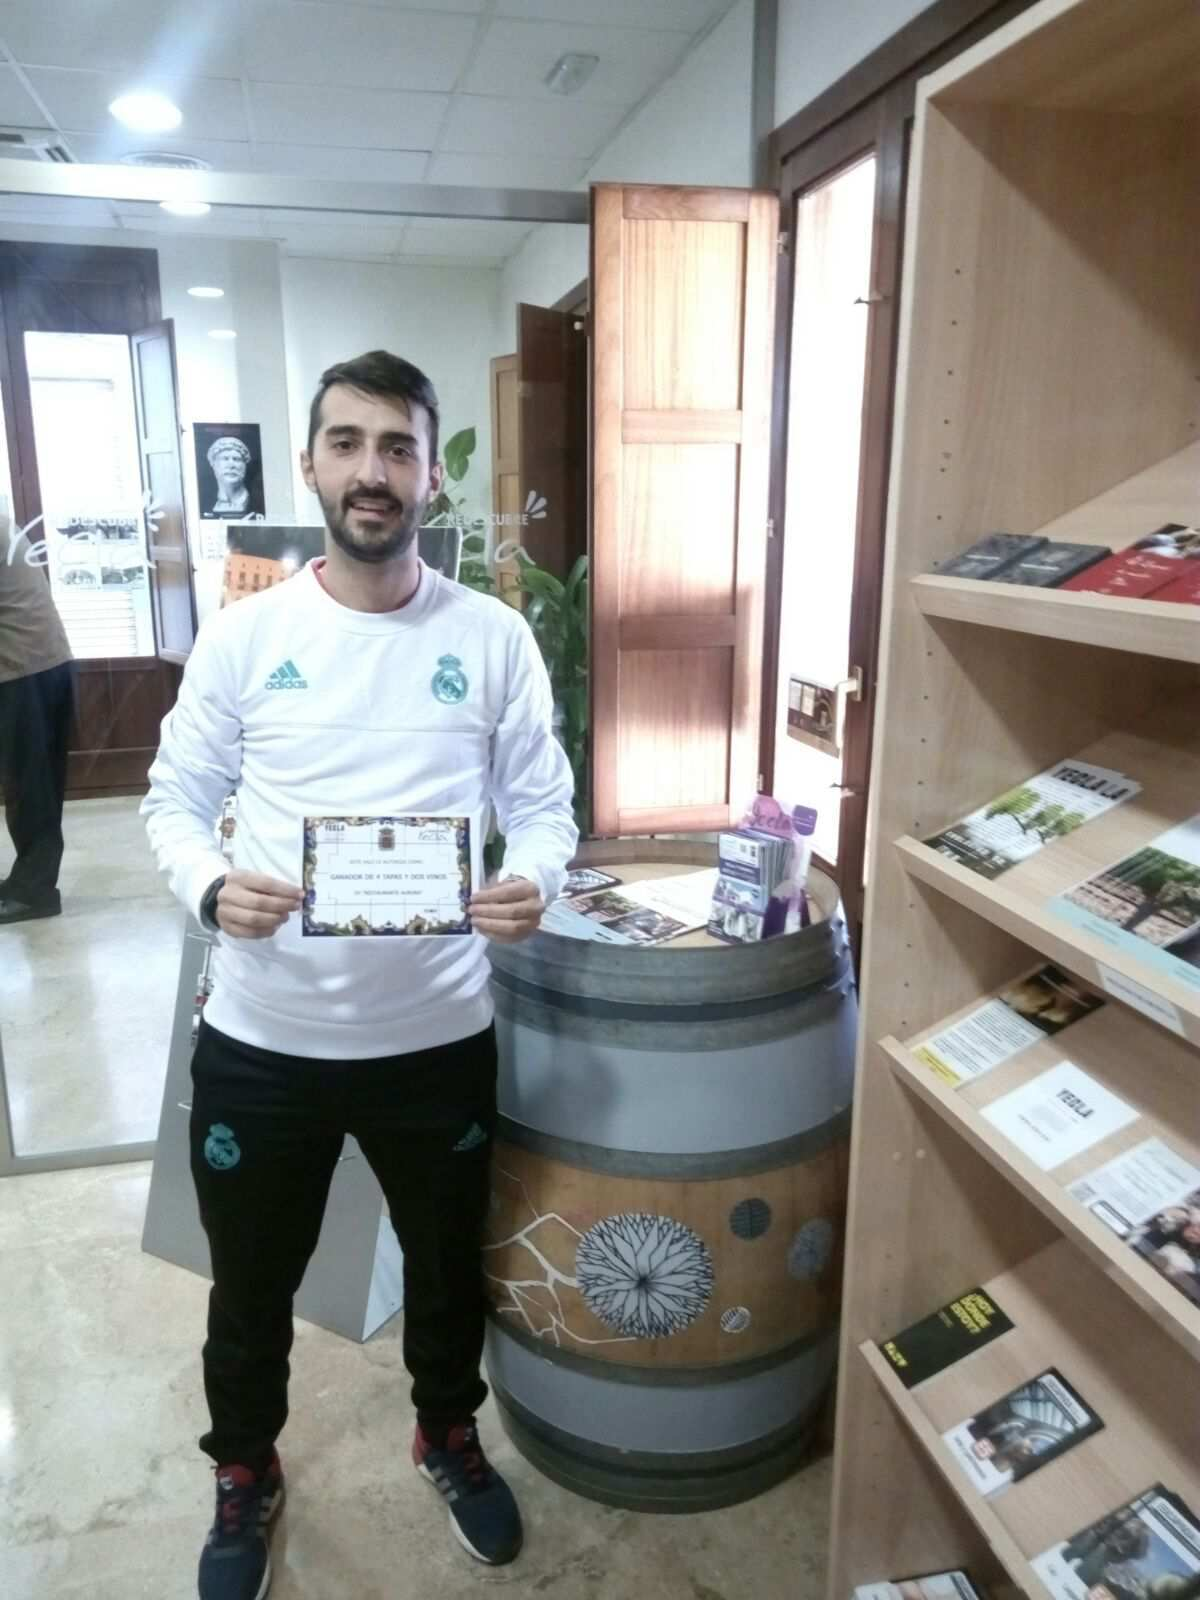 Salvador, winner of the challenge The Will of the month of October